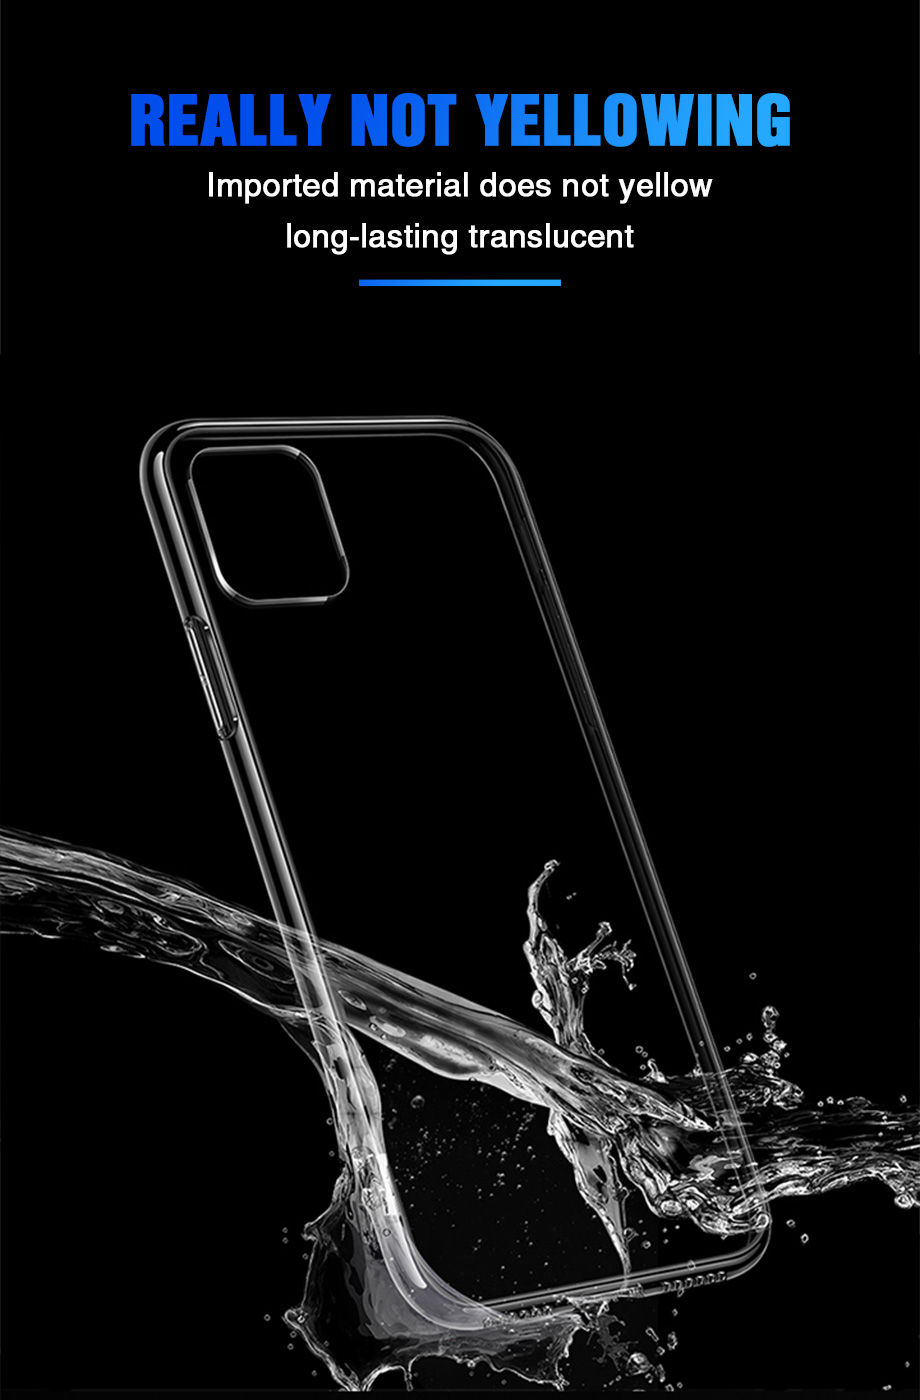 He2e3aa3916894a0f9822c1dc61a25775s - Ultra Thin Clear Silicone Phone Case For iPhone 11 Pro Max Case iphone XR XS Max X 7 8 6 6S Plus Soft TPU Transparent Back Cover